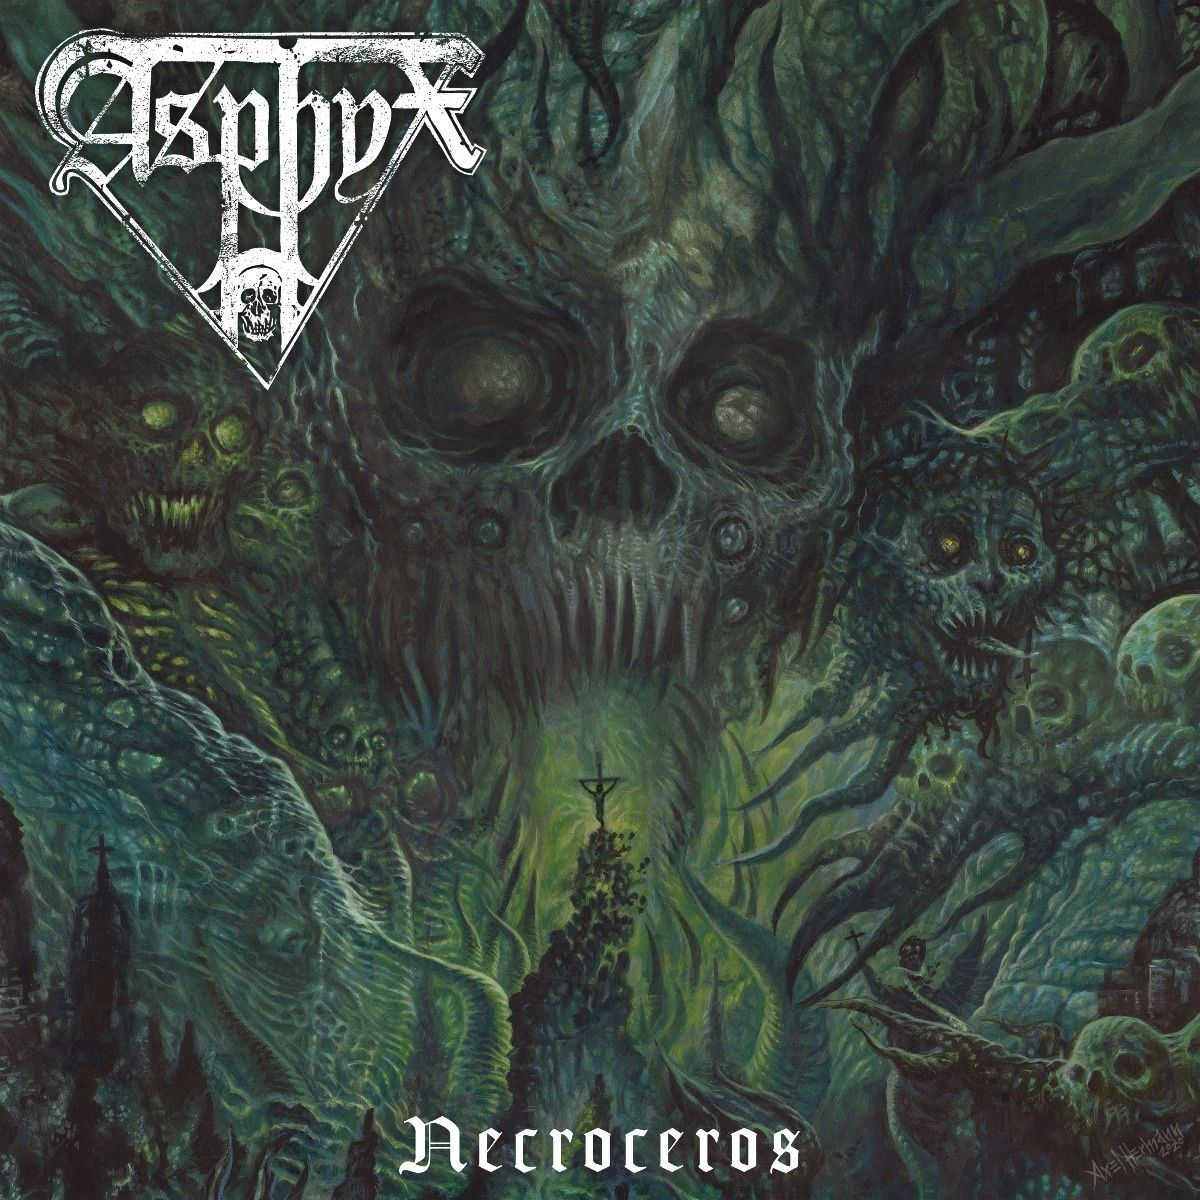 """> """"Memorable, full of rage, and sure to deliver all of the goods that fans both new and old will enjoy,"""" says @DeadRhetoric about Asphyx's new album """"Necroceros,"""" out now on @centurymedia"""